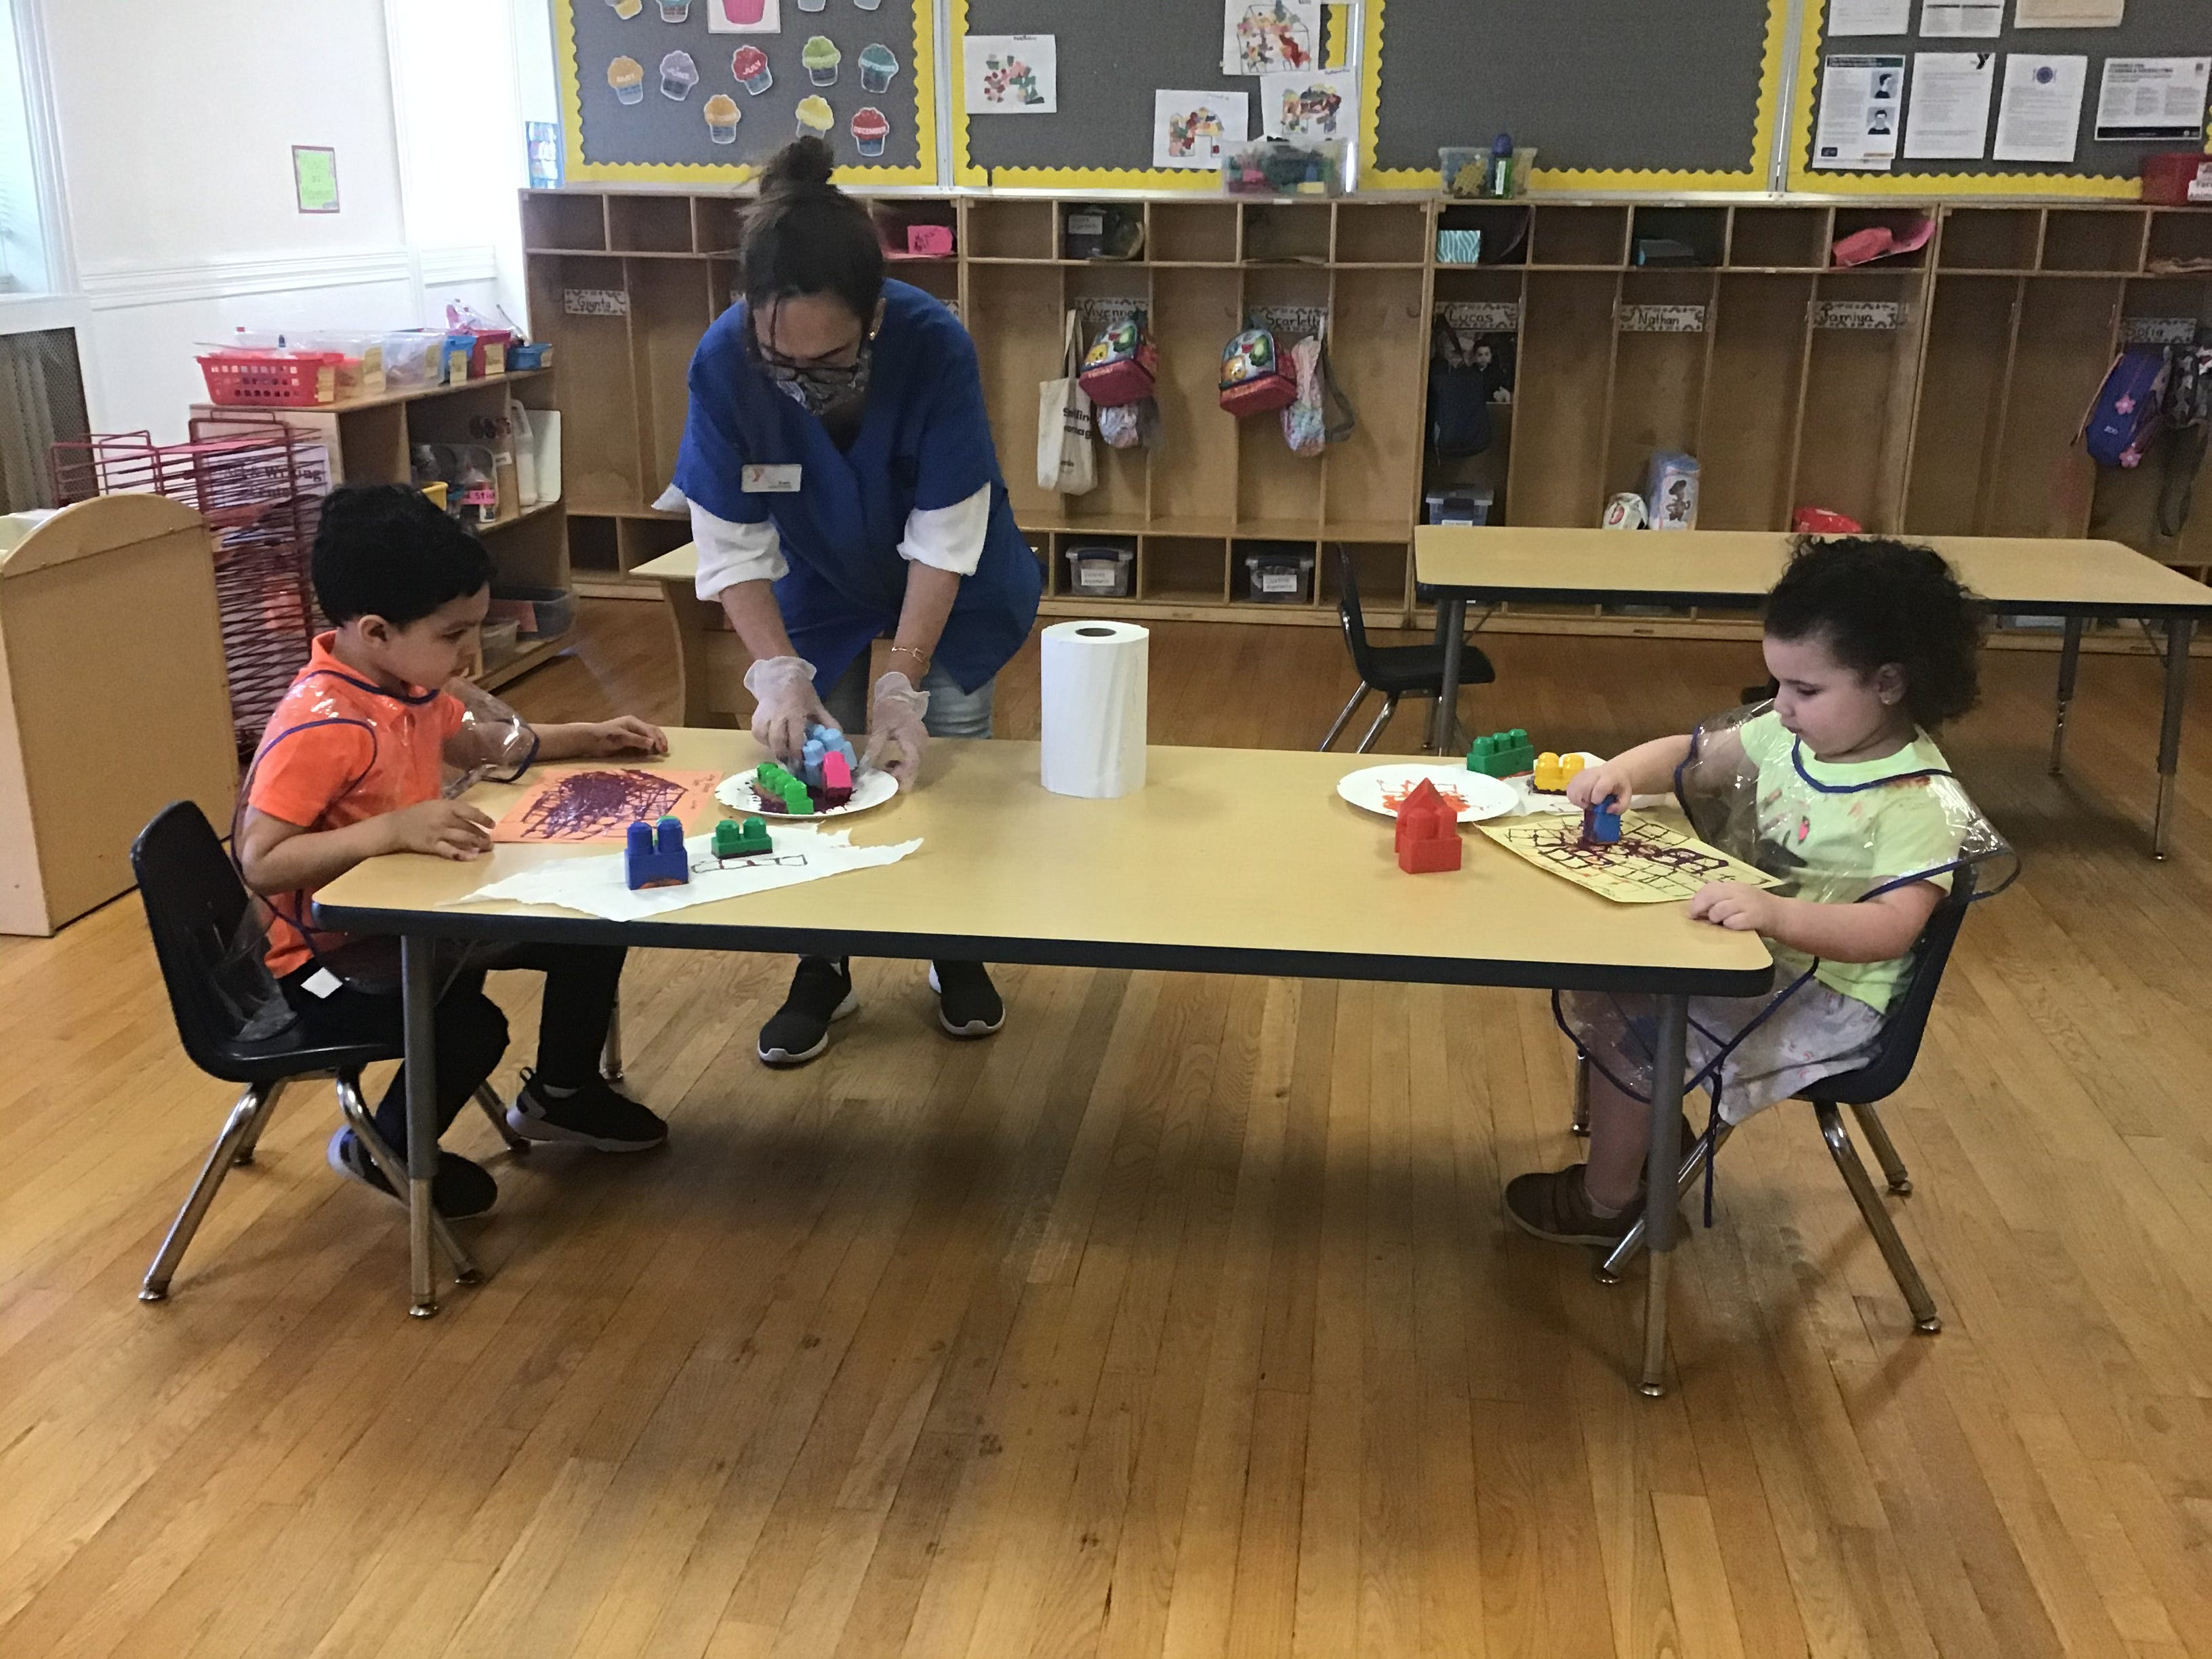 The pandemic is driving moms out of the workforce, COVID-19 child care crisis persists